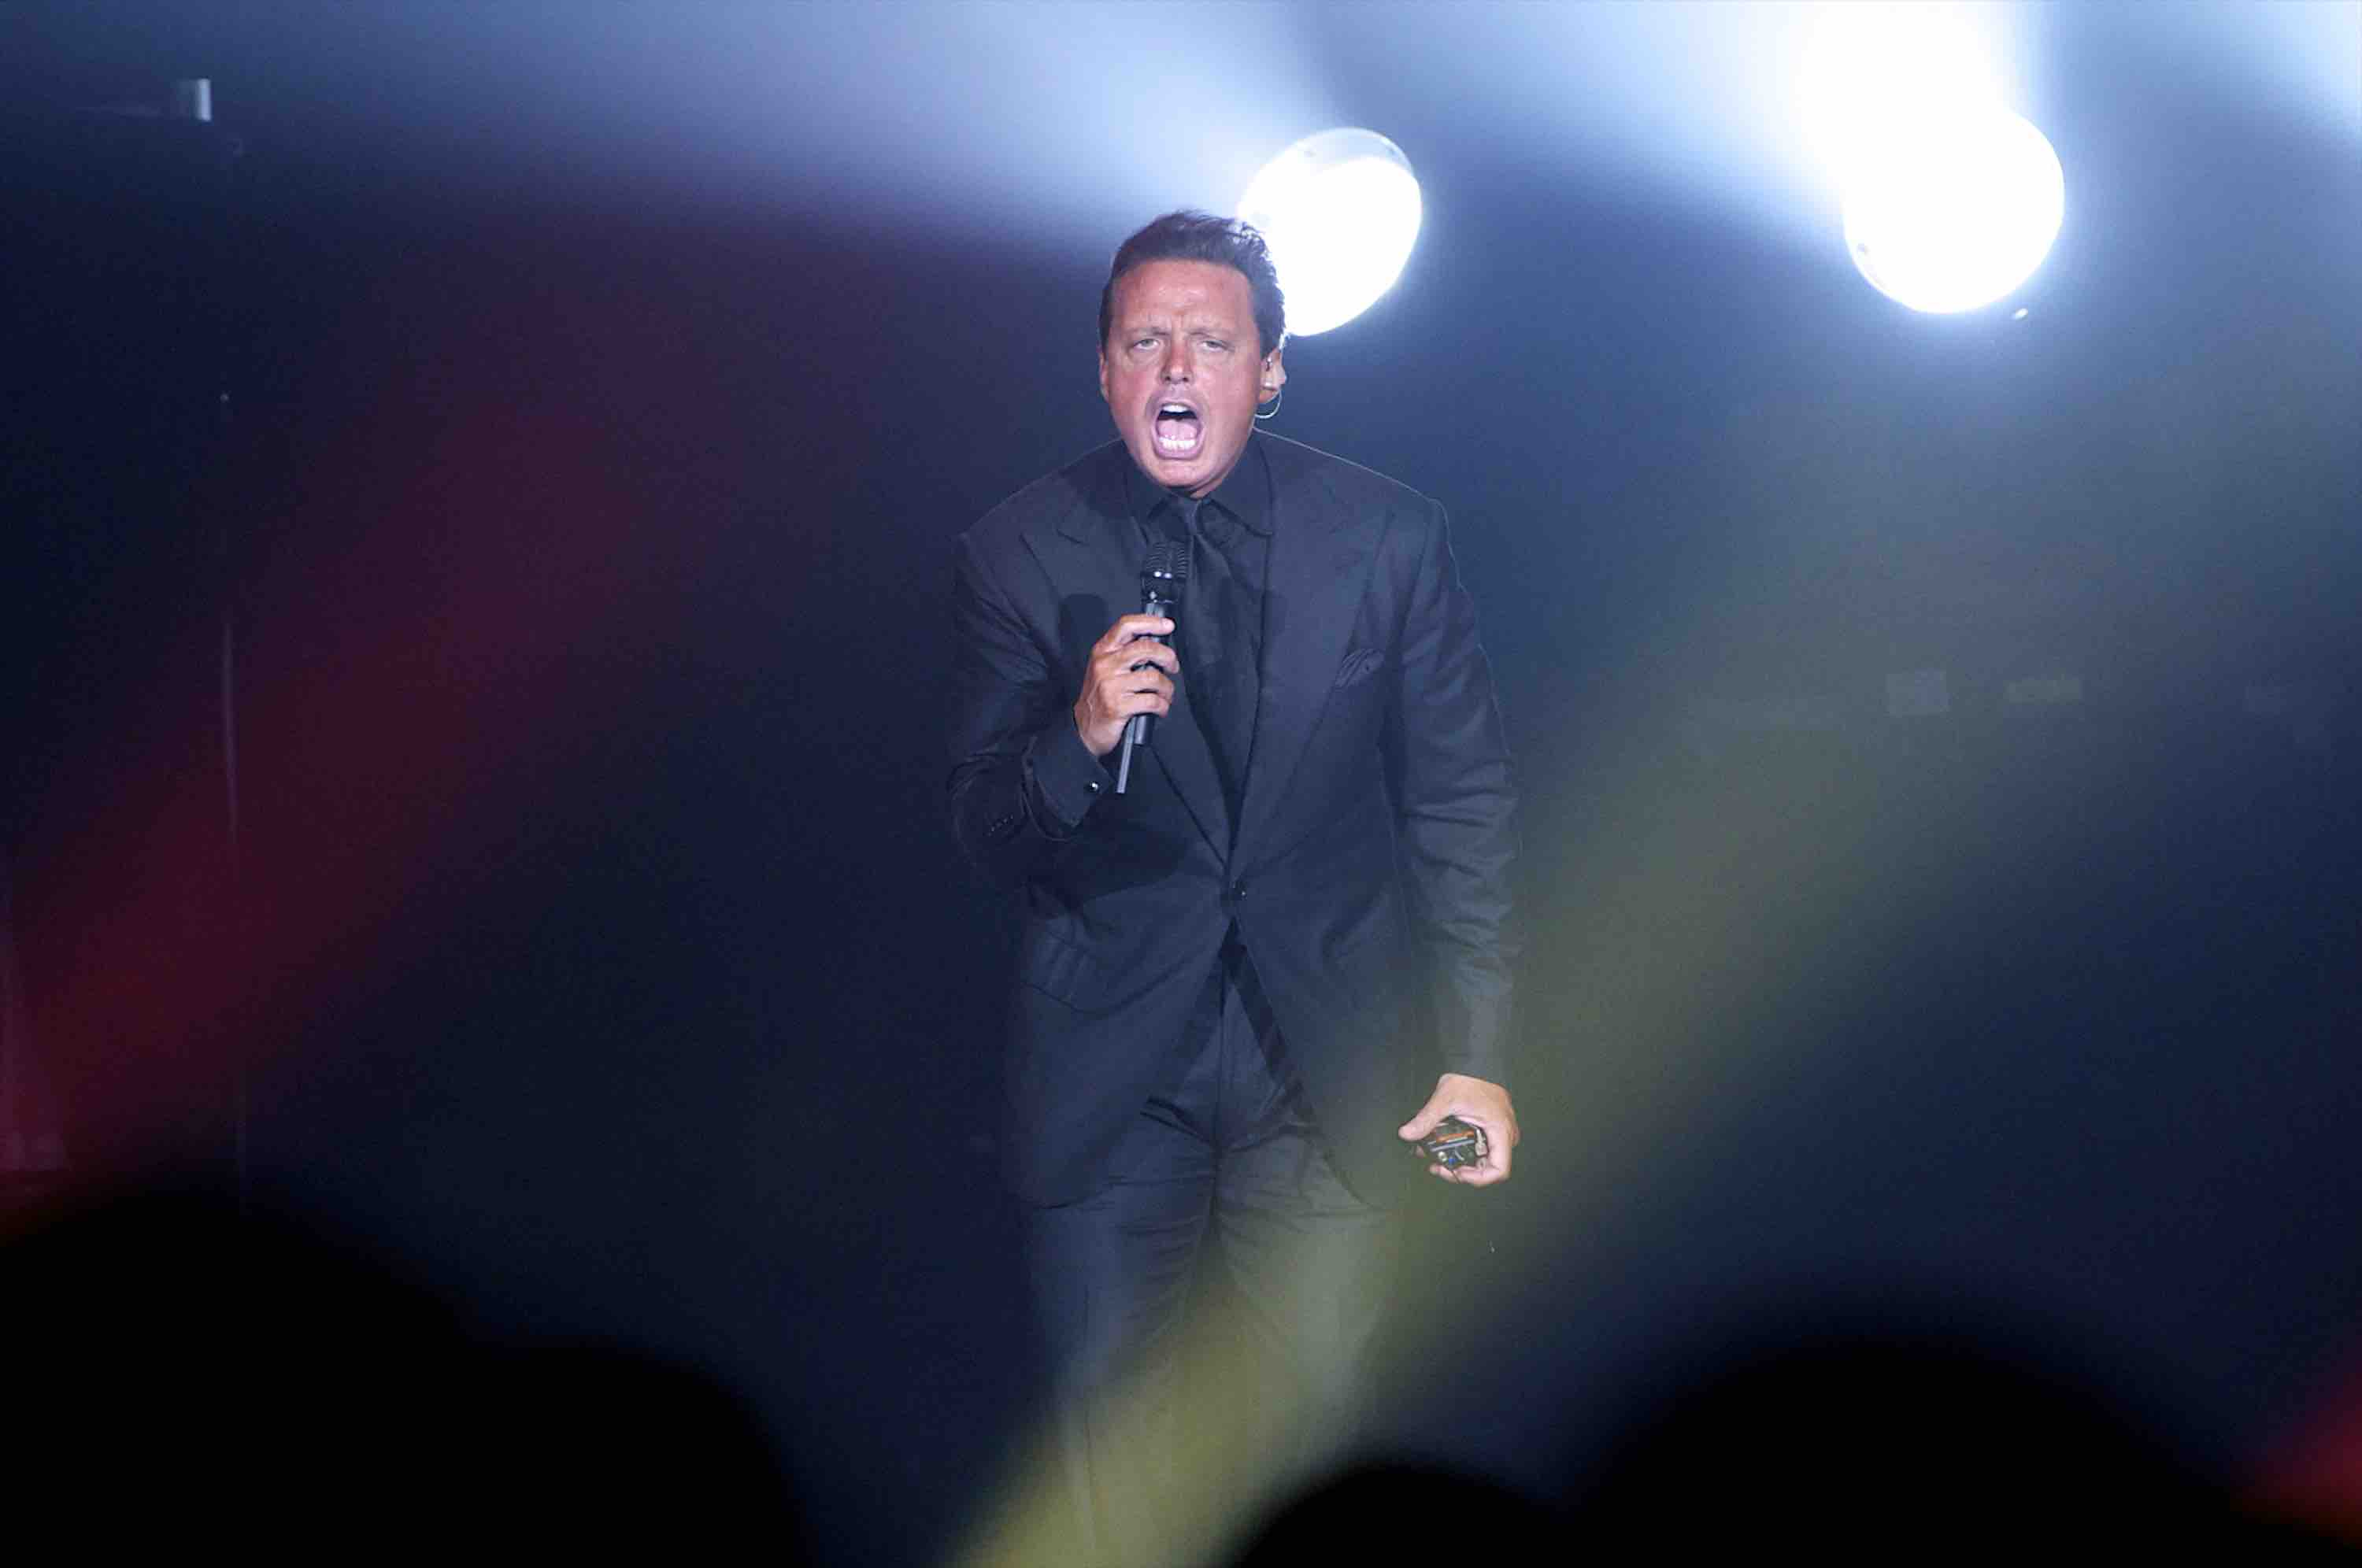 Upset by the Sound at His Panama Concert, Luis Miguel Caught on Camera Throwing Mic at Technician